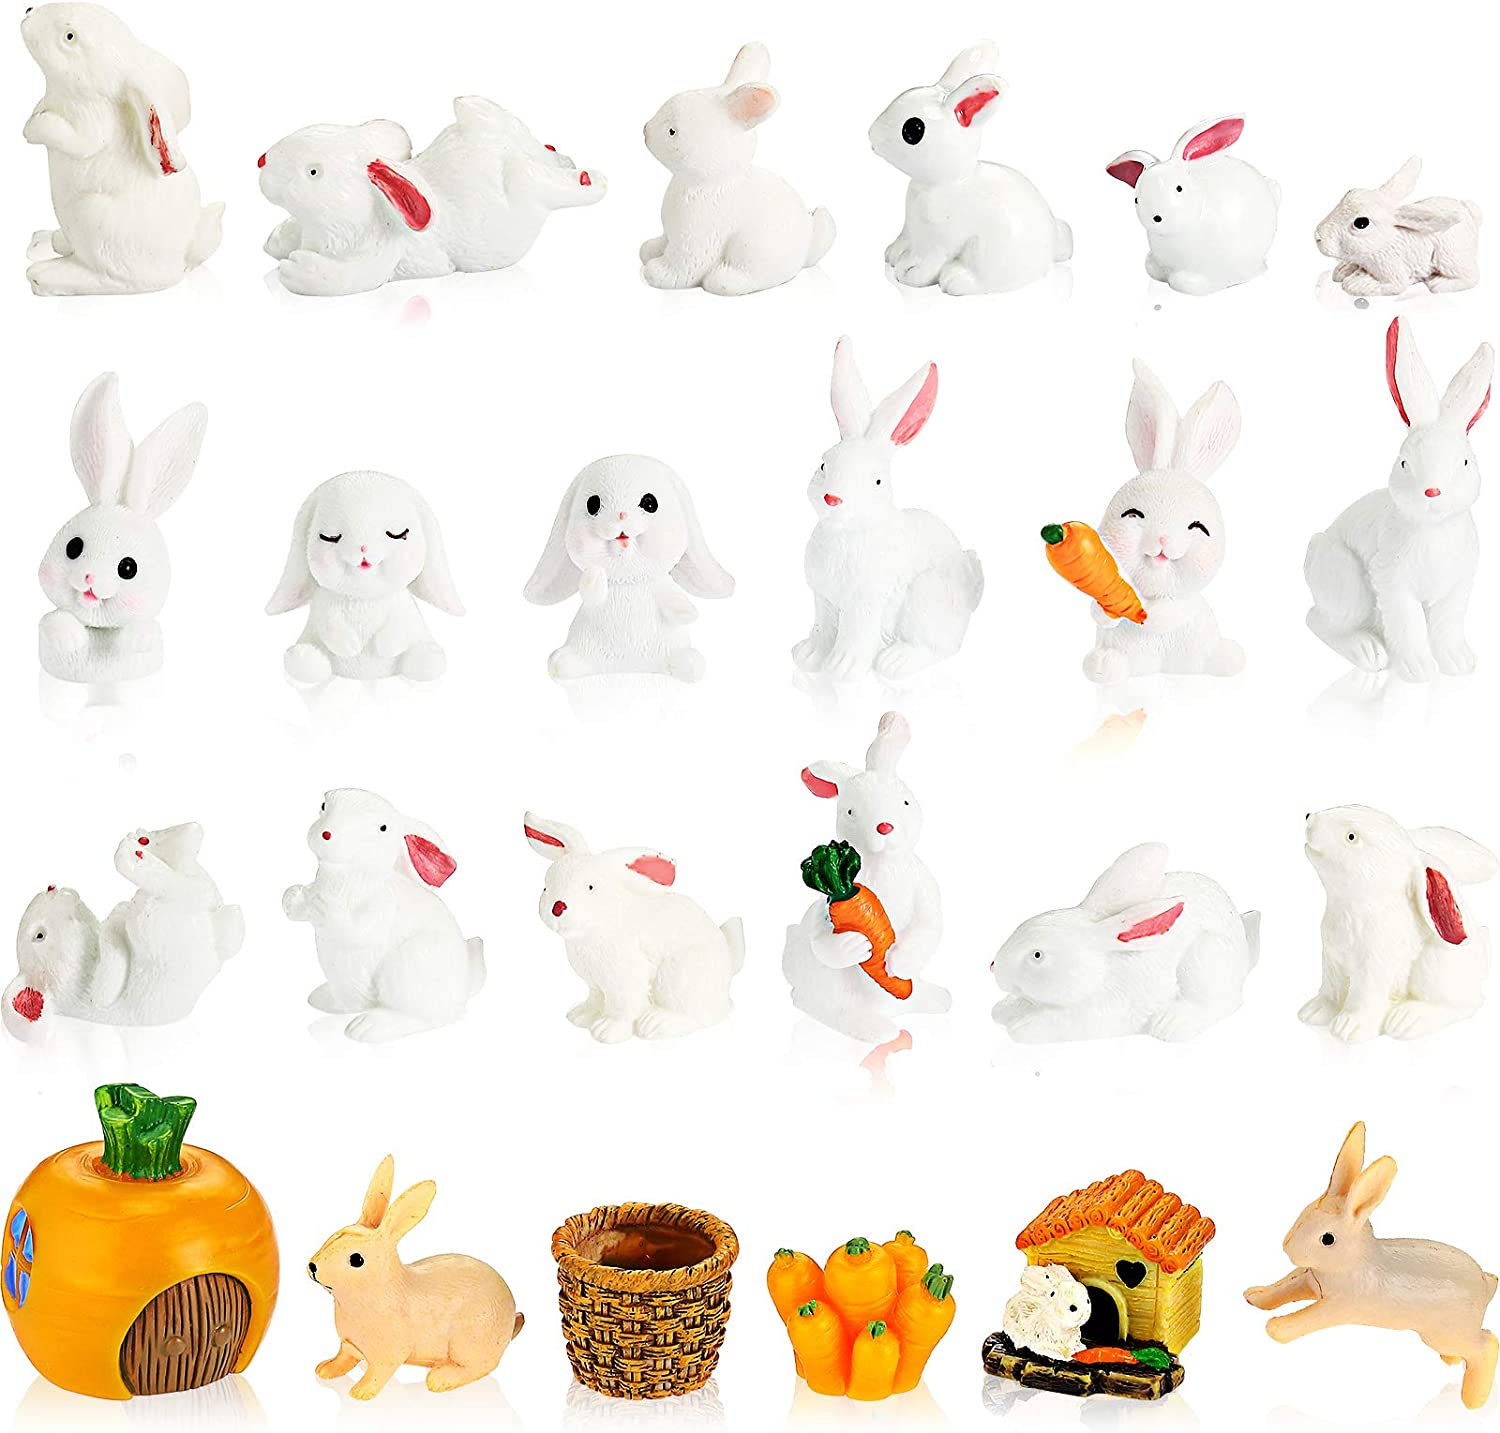 24 Pieces Easter Mini Bunny Figurines Cute Animal Rabbit Figure Rabbit Characters Cupcake Toppers Rabbit Miniature Figurines Ornaments Collection for Easter Day Christmas Birthday Craft Decorations